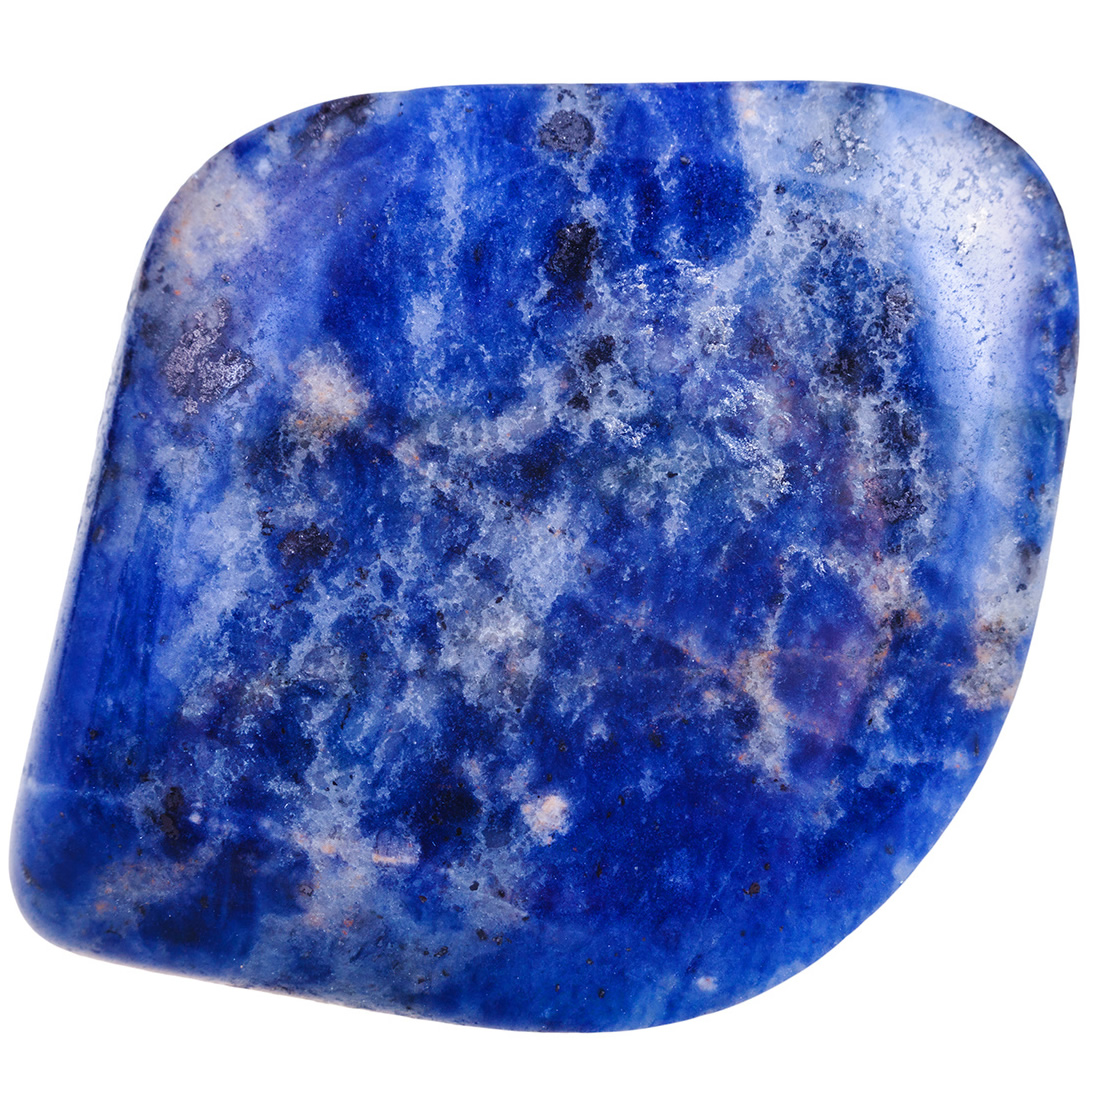 sodalite meaning and properties beadage